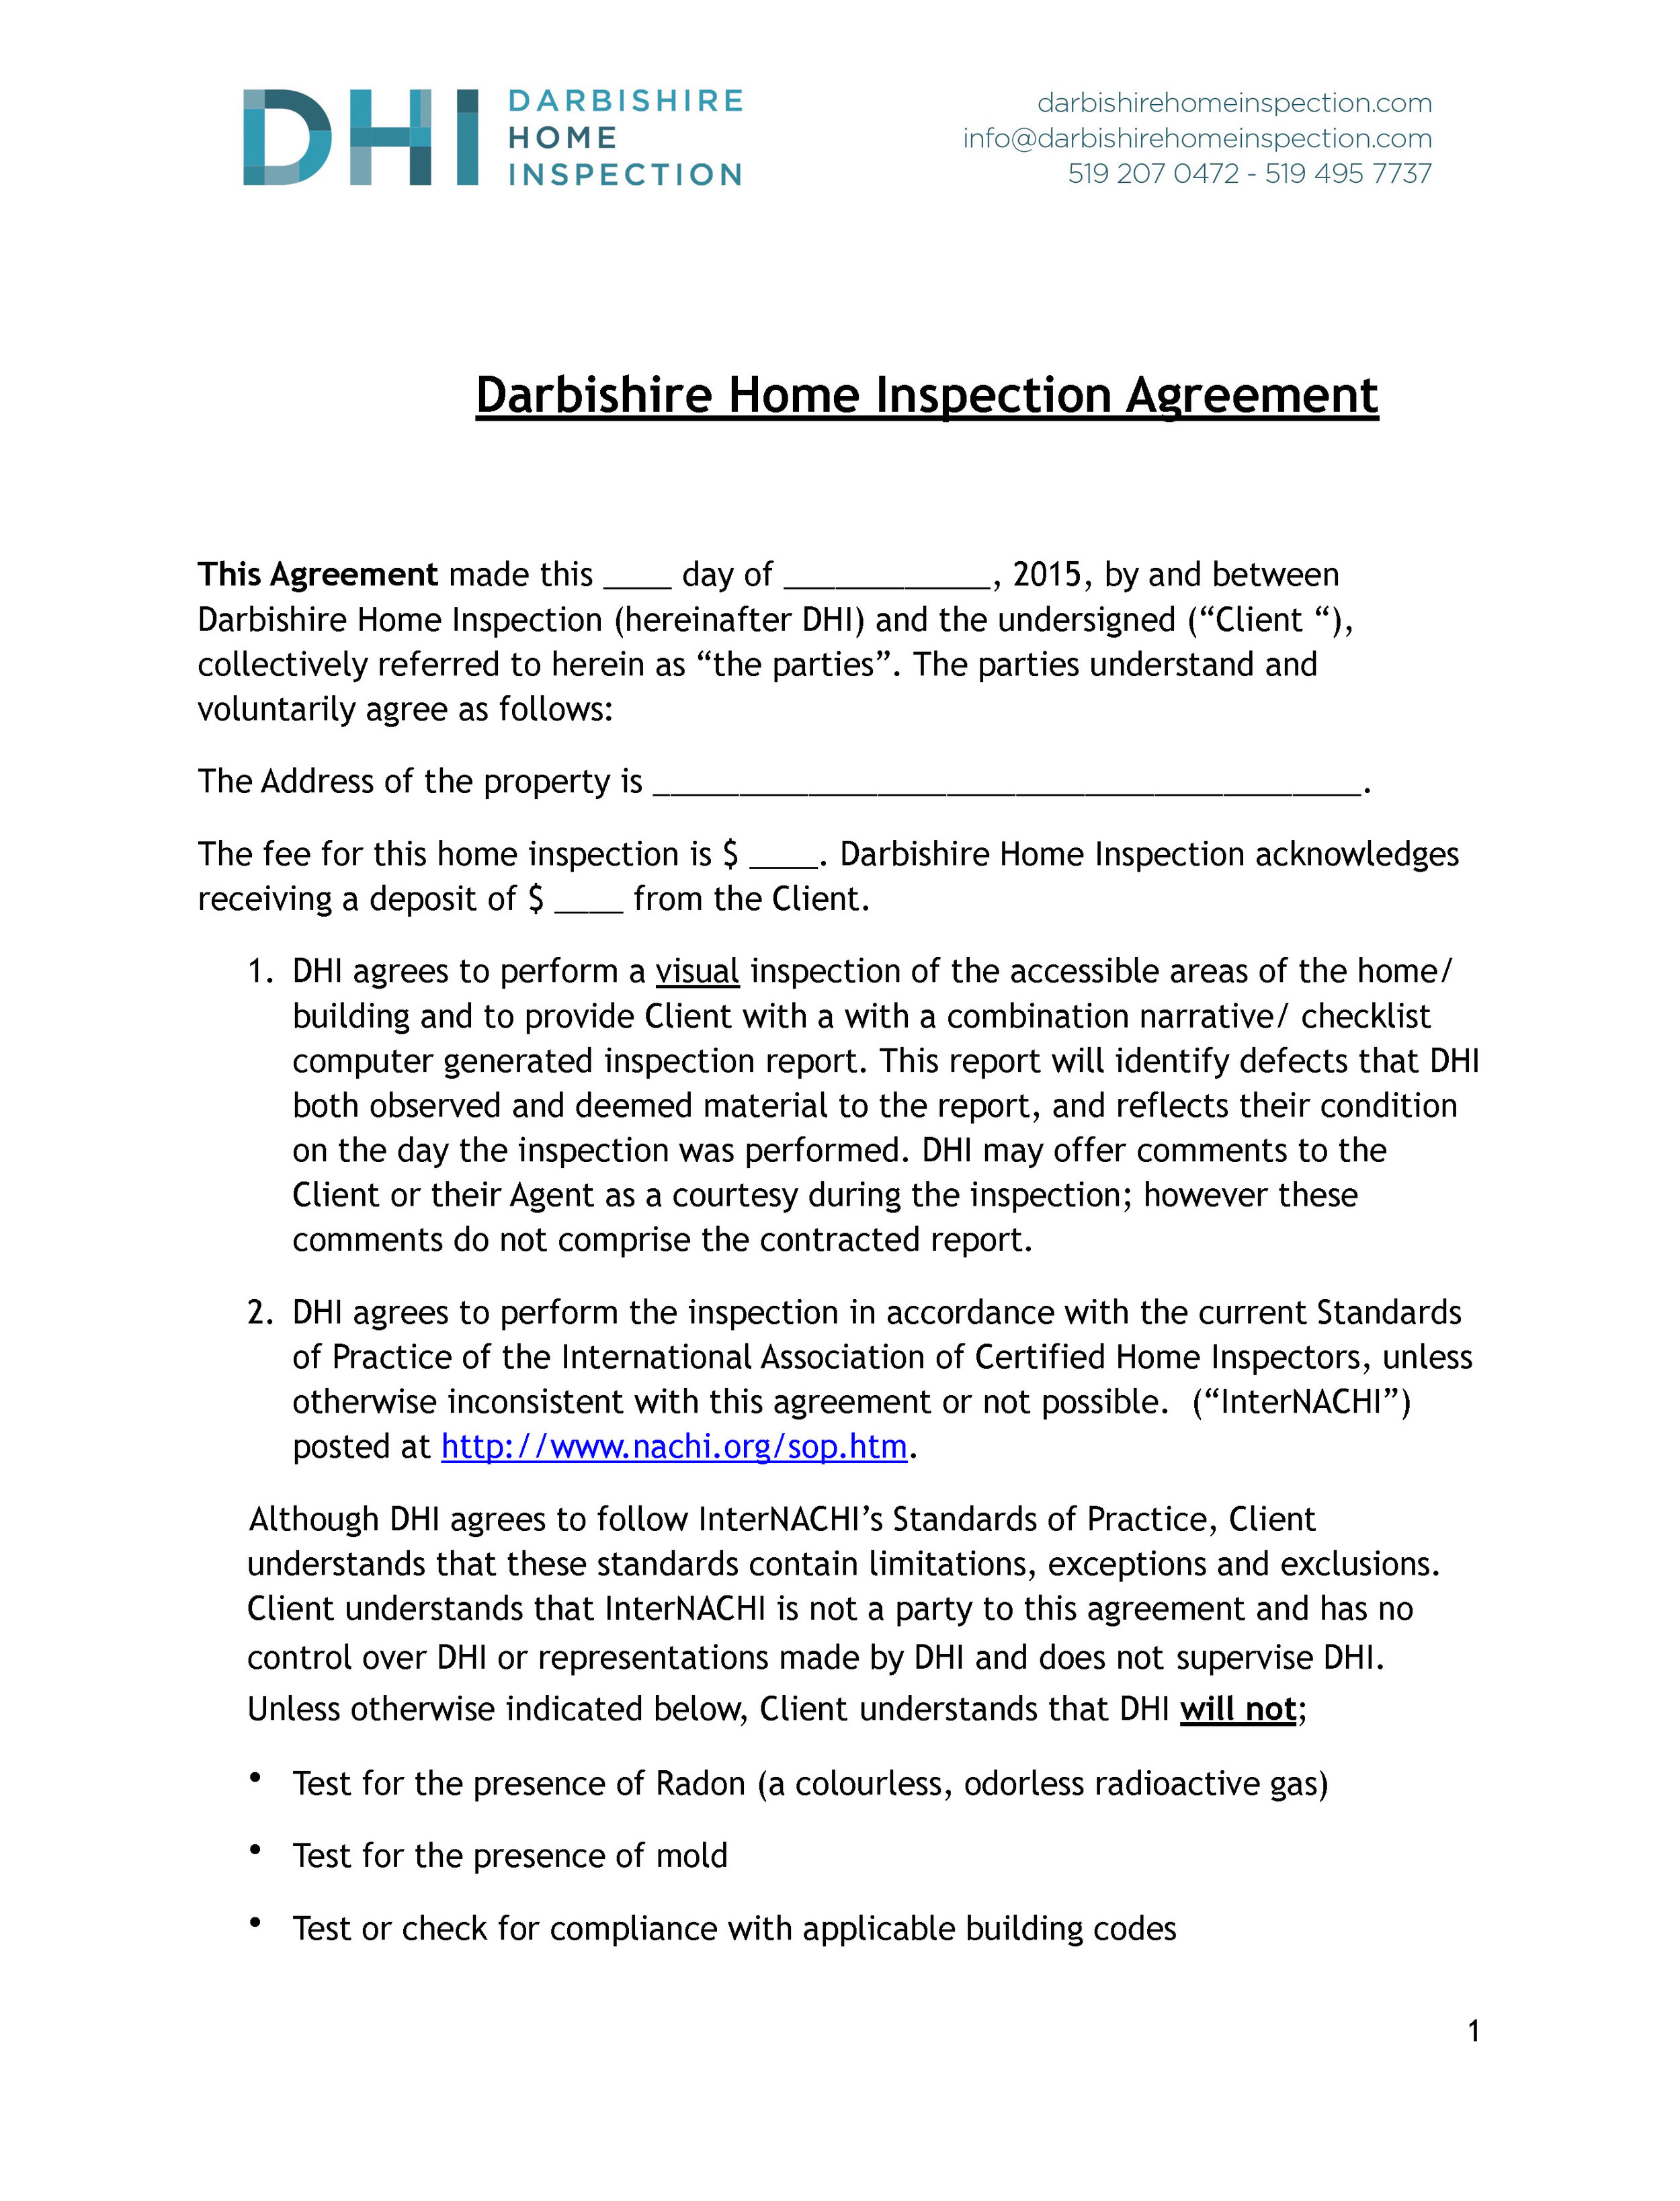 Darbishire Home Inspection Agreement_Page_1.jpg